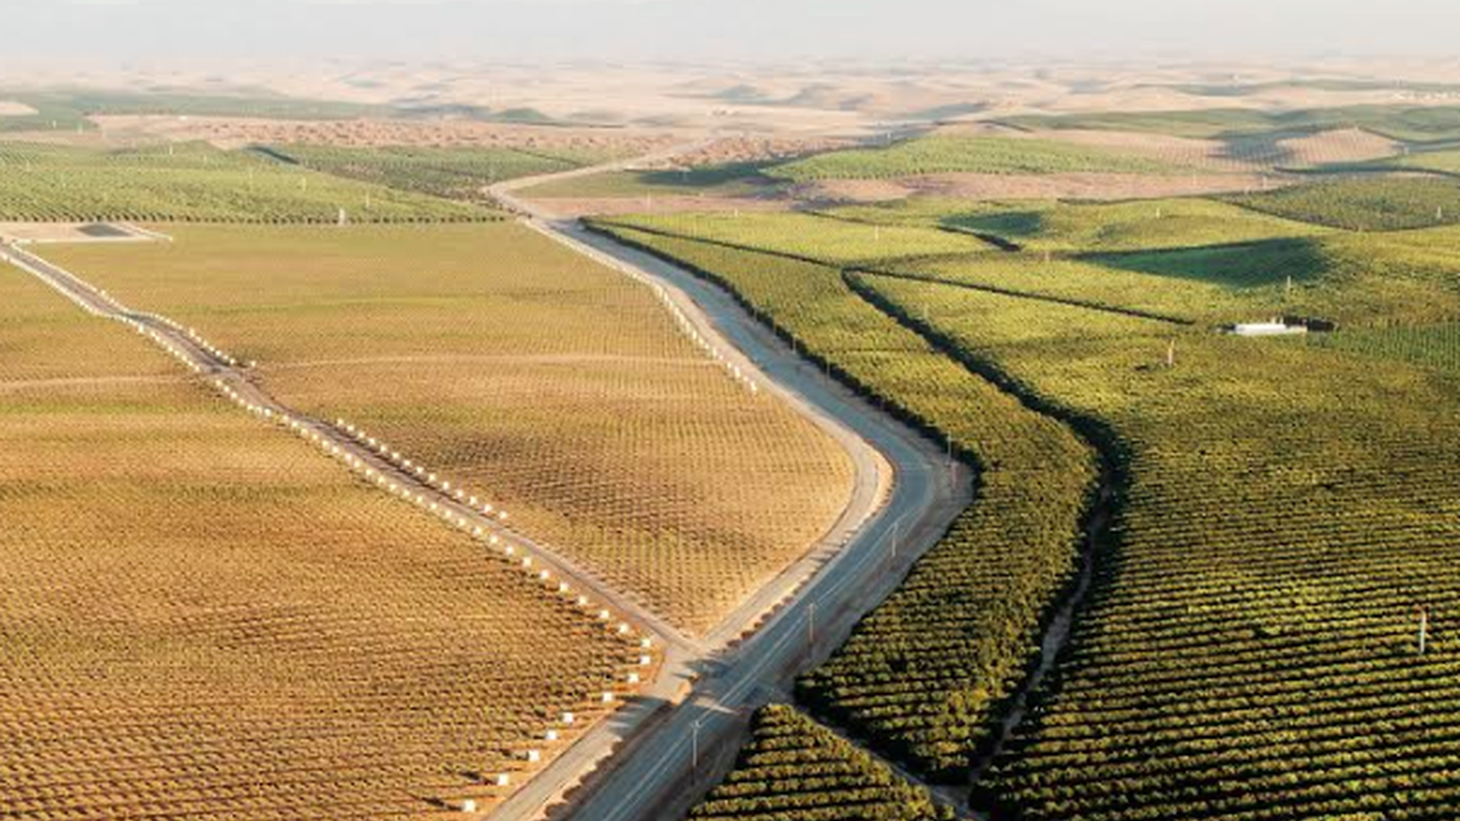 Water may be the essence of life but it's subject to near-constant misuse. Journalist Mark Arax profiles a couple running a water monopoly in the Central Valley.